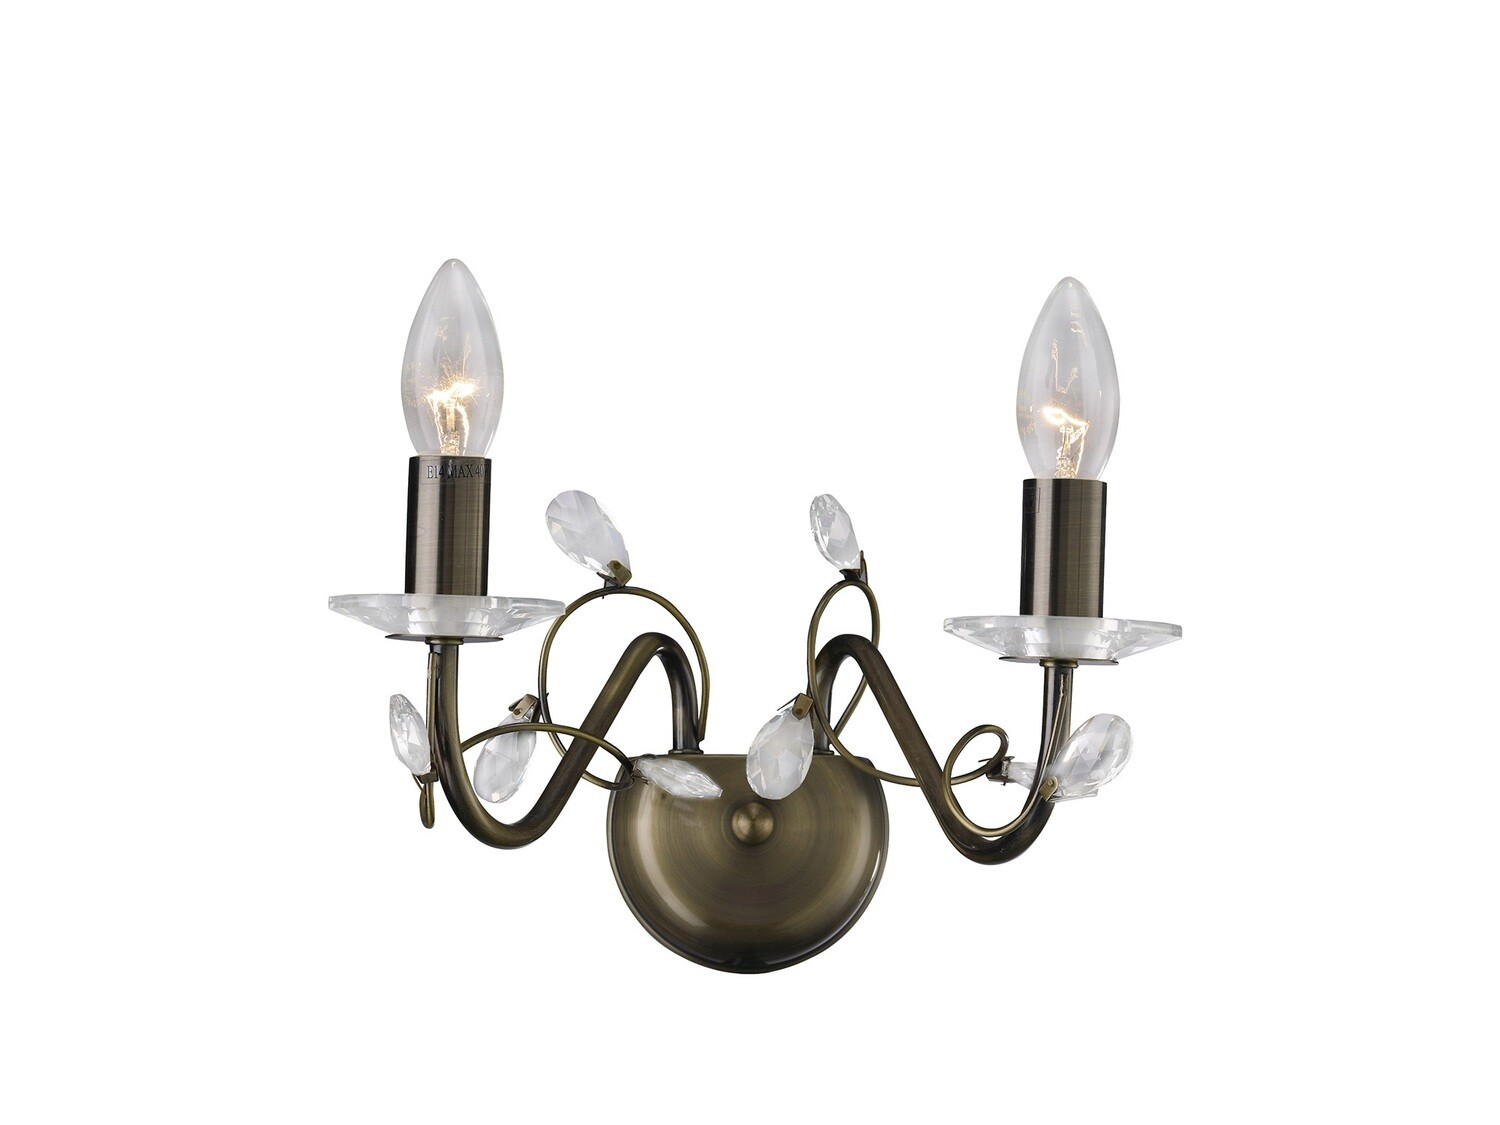 Willow Wall Lamp WITHOUT SHADE 2 Light E14 Antique Brass/Crystal